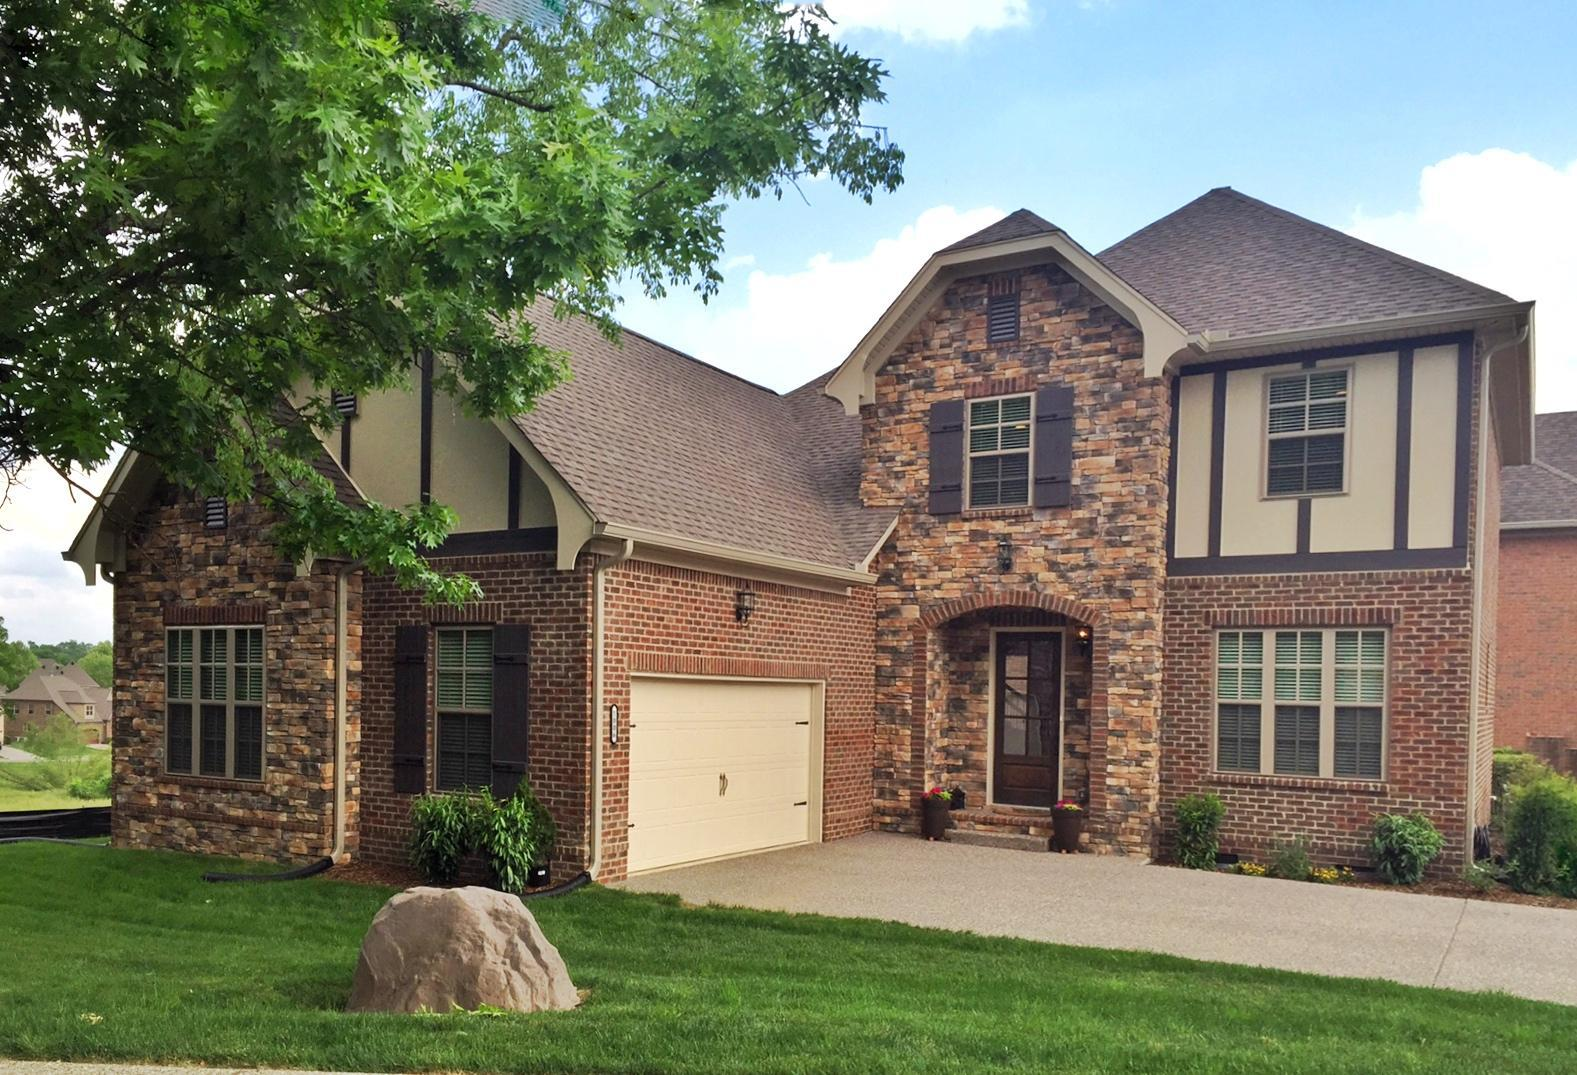 Photo of 14 Copper Creek Dr  Goodlettsville  TN